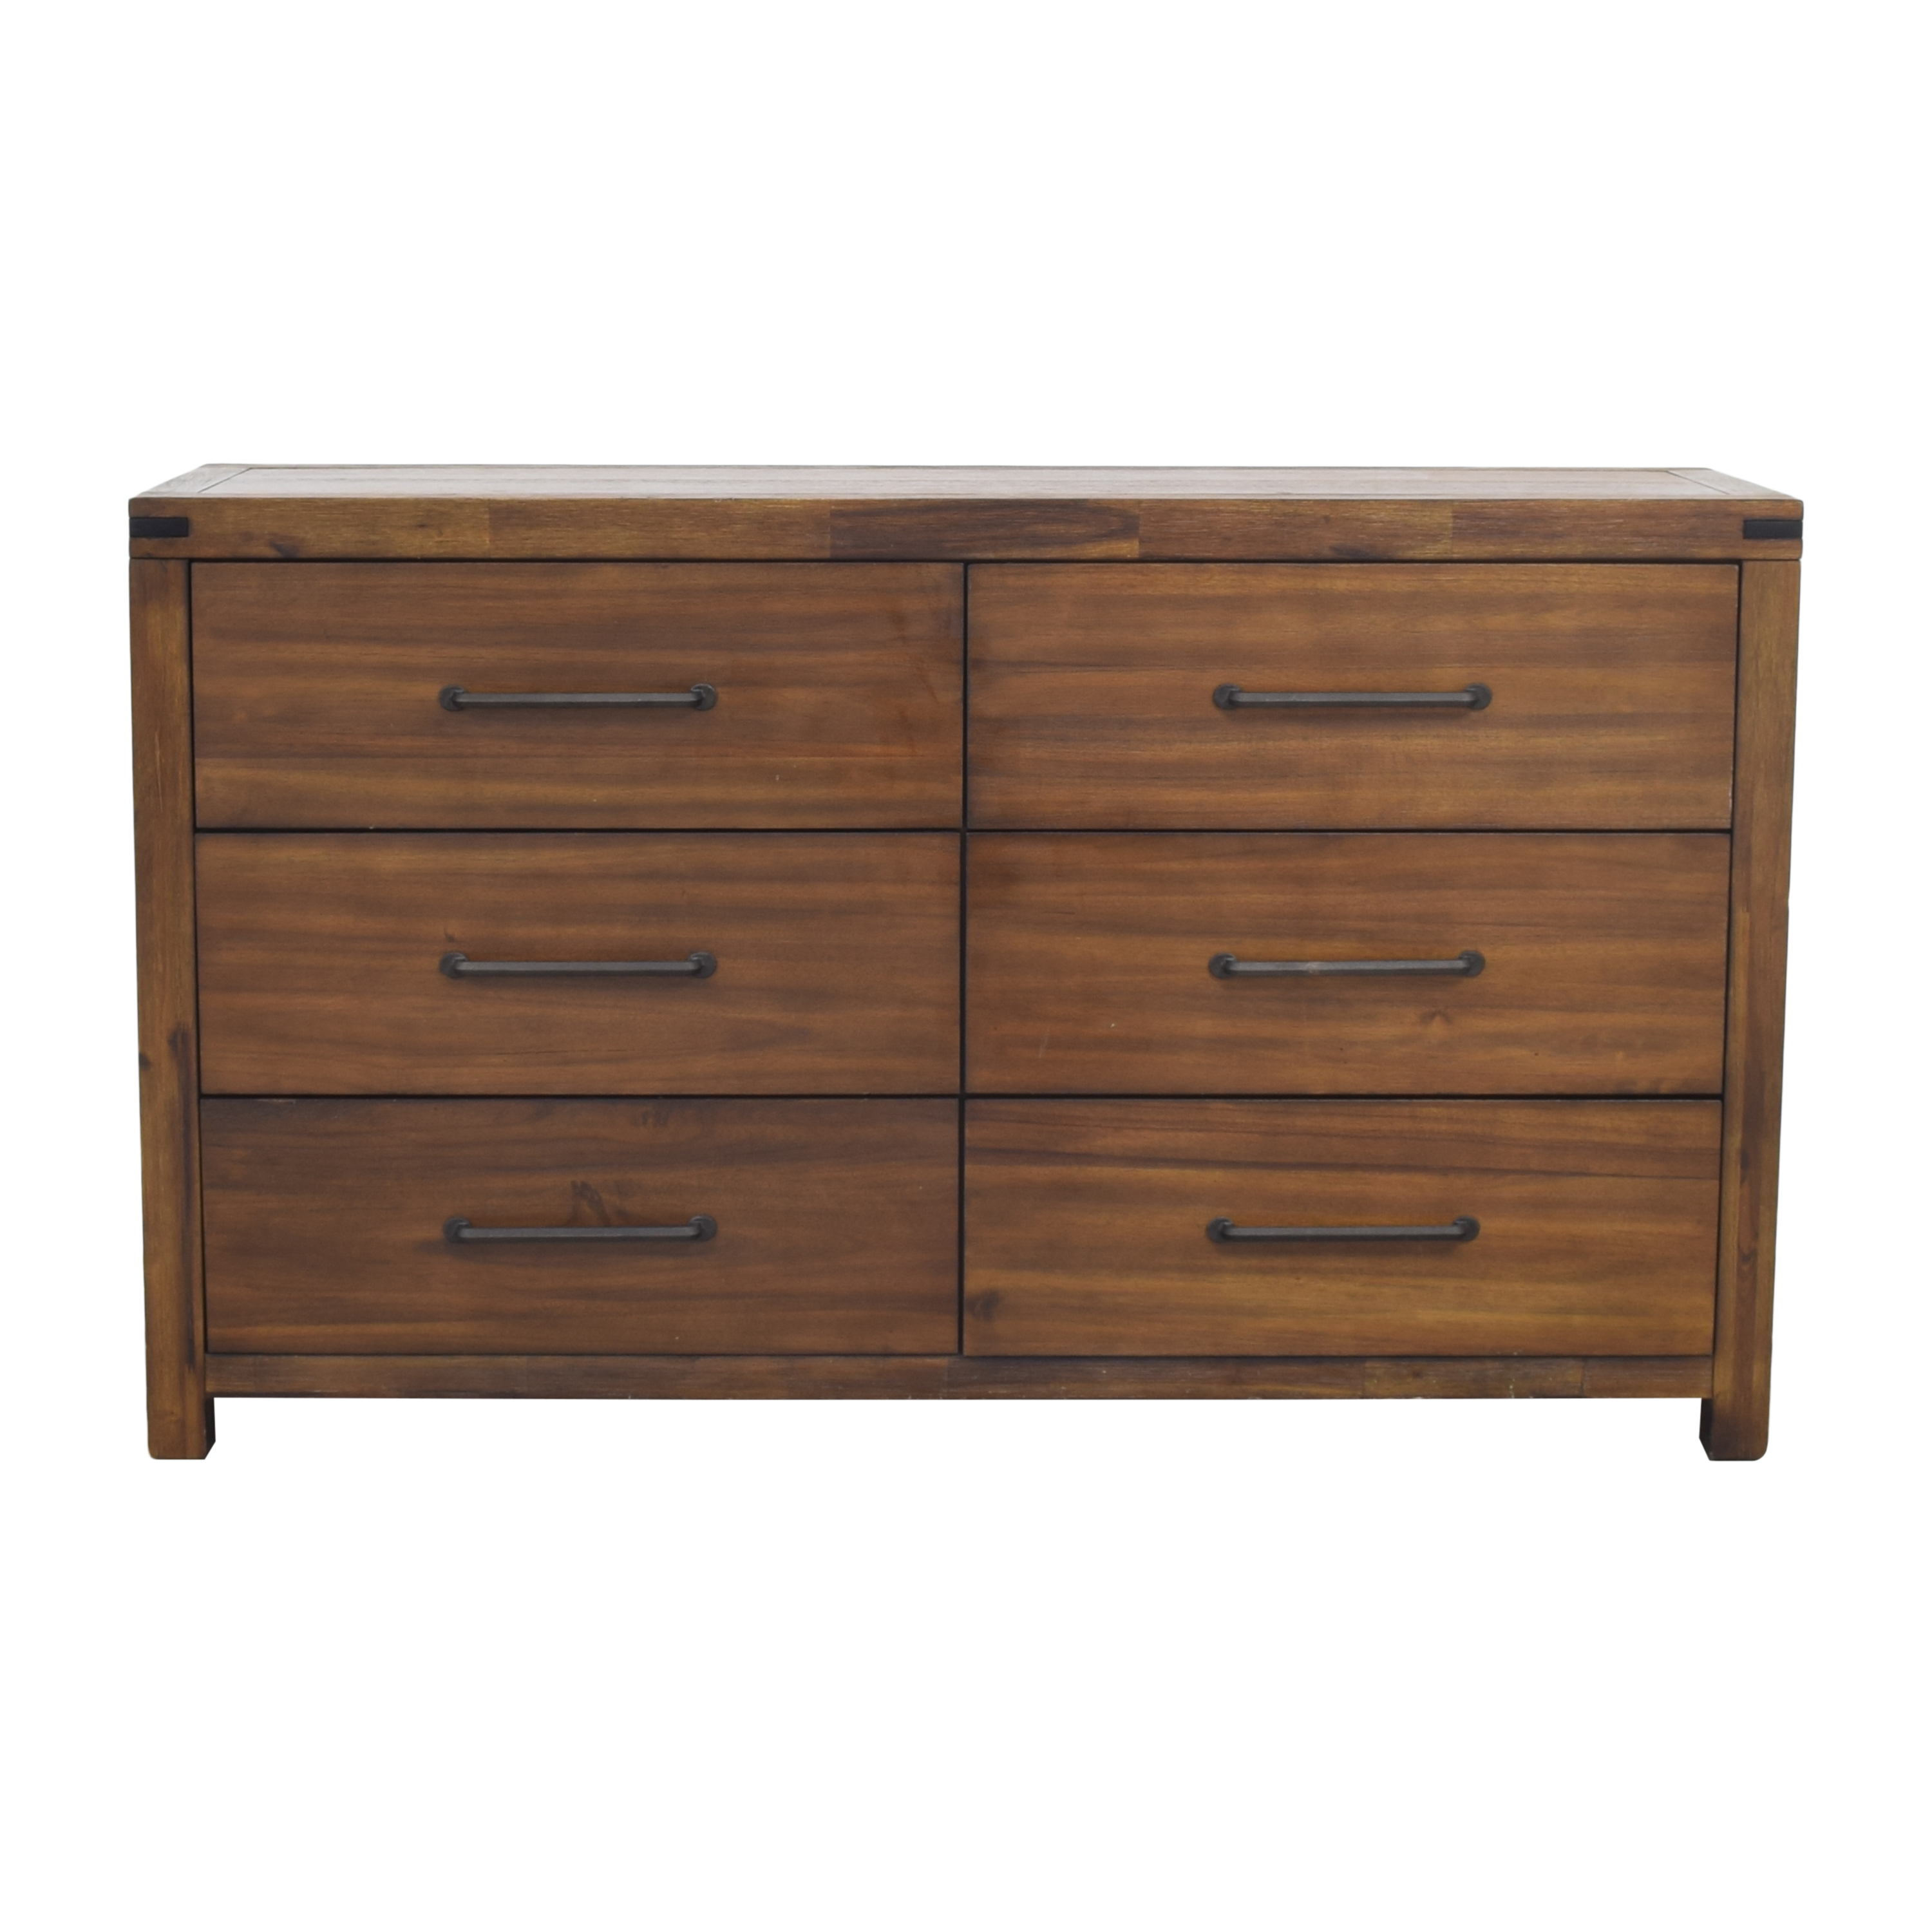 Raymour & Flanigan Raymour & Flanigan Gannon Double Dresser dimensions